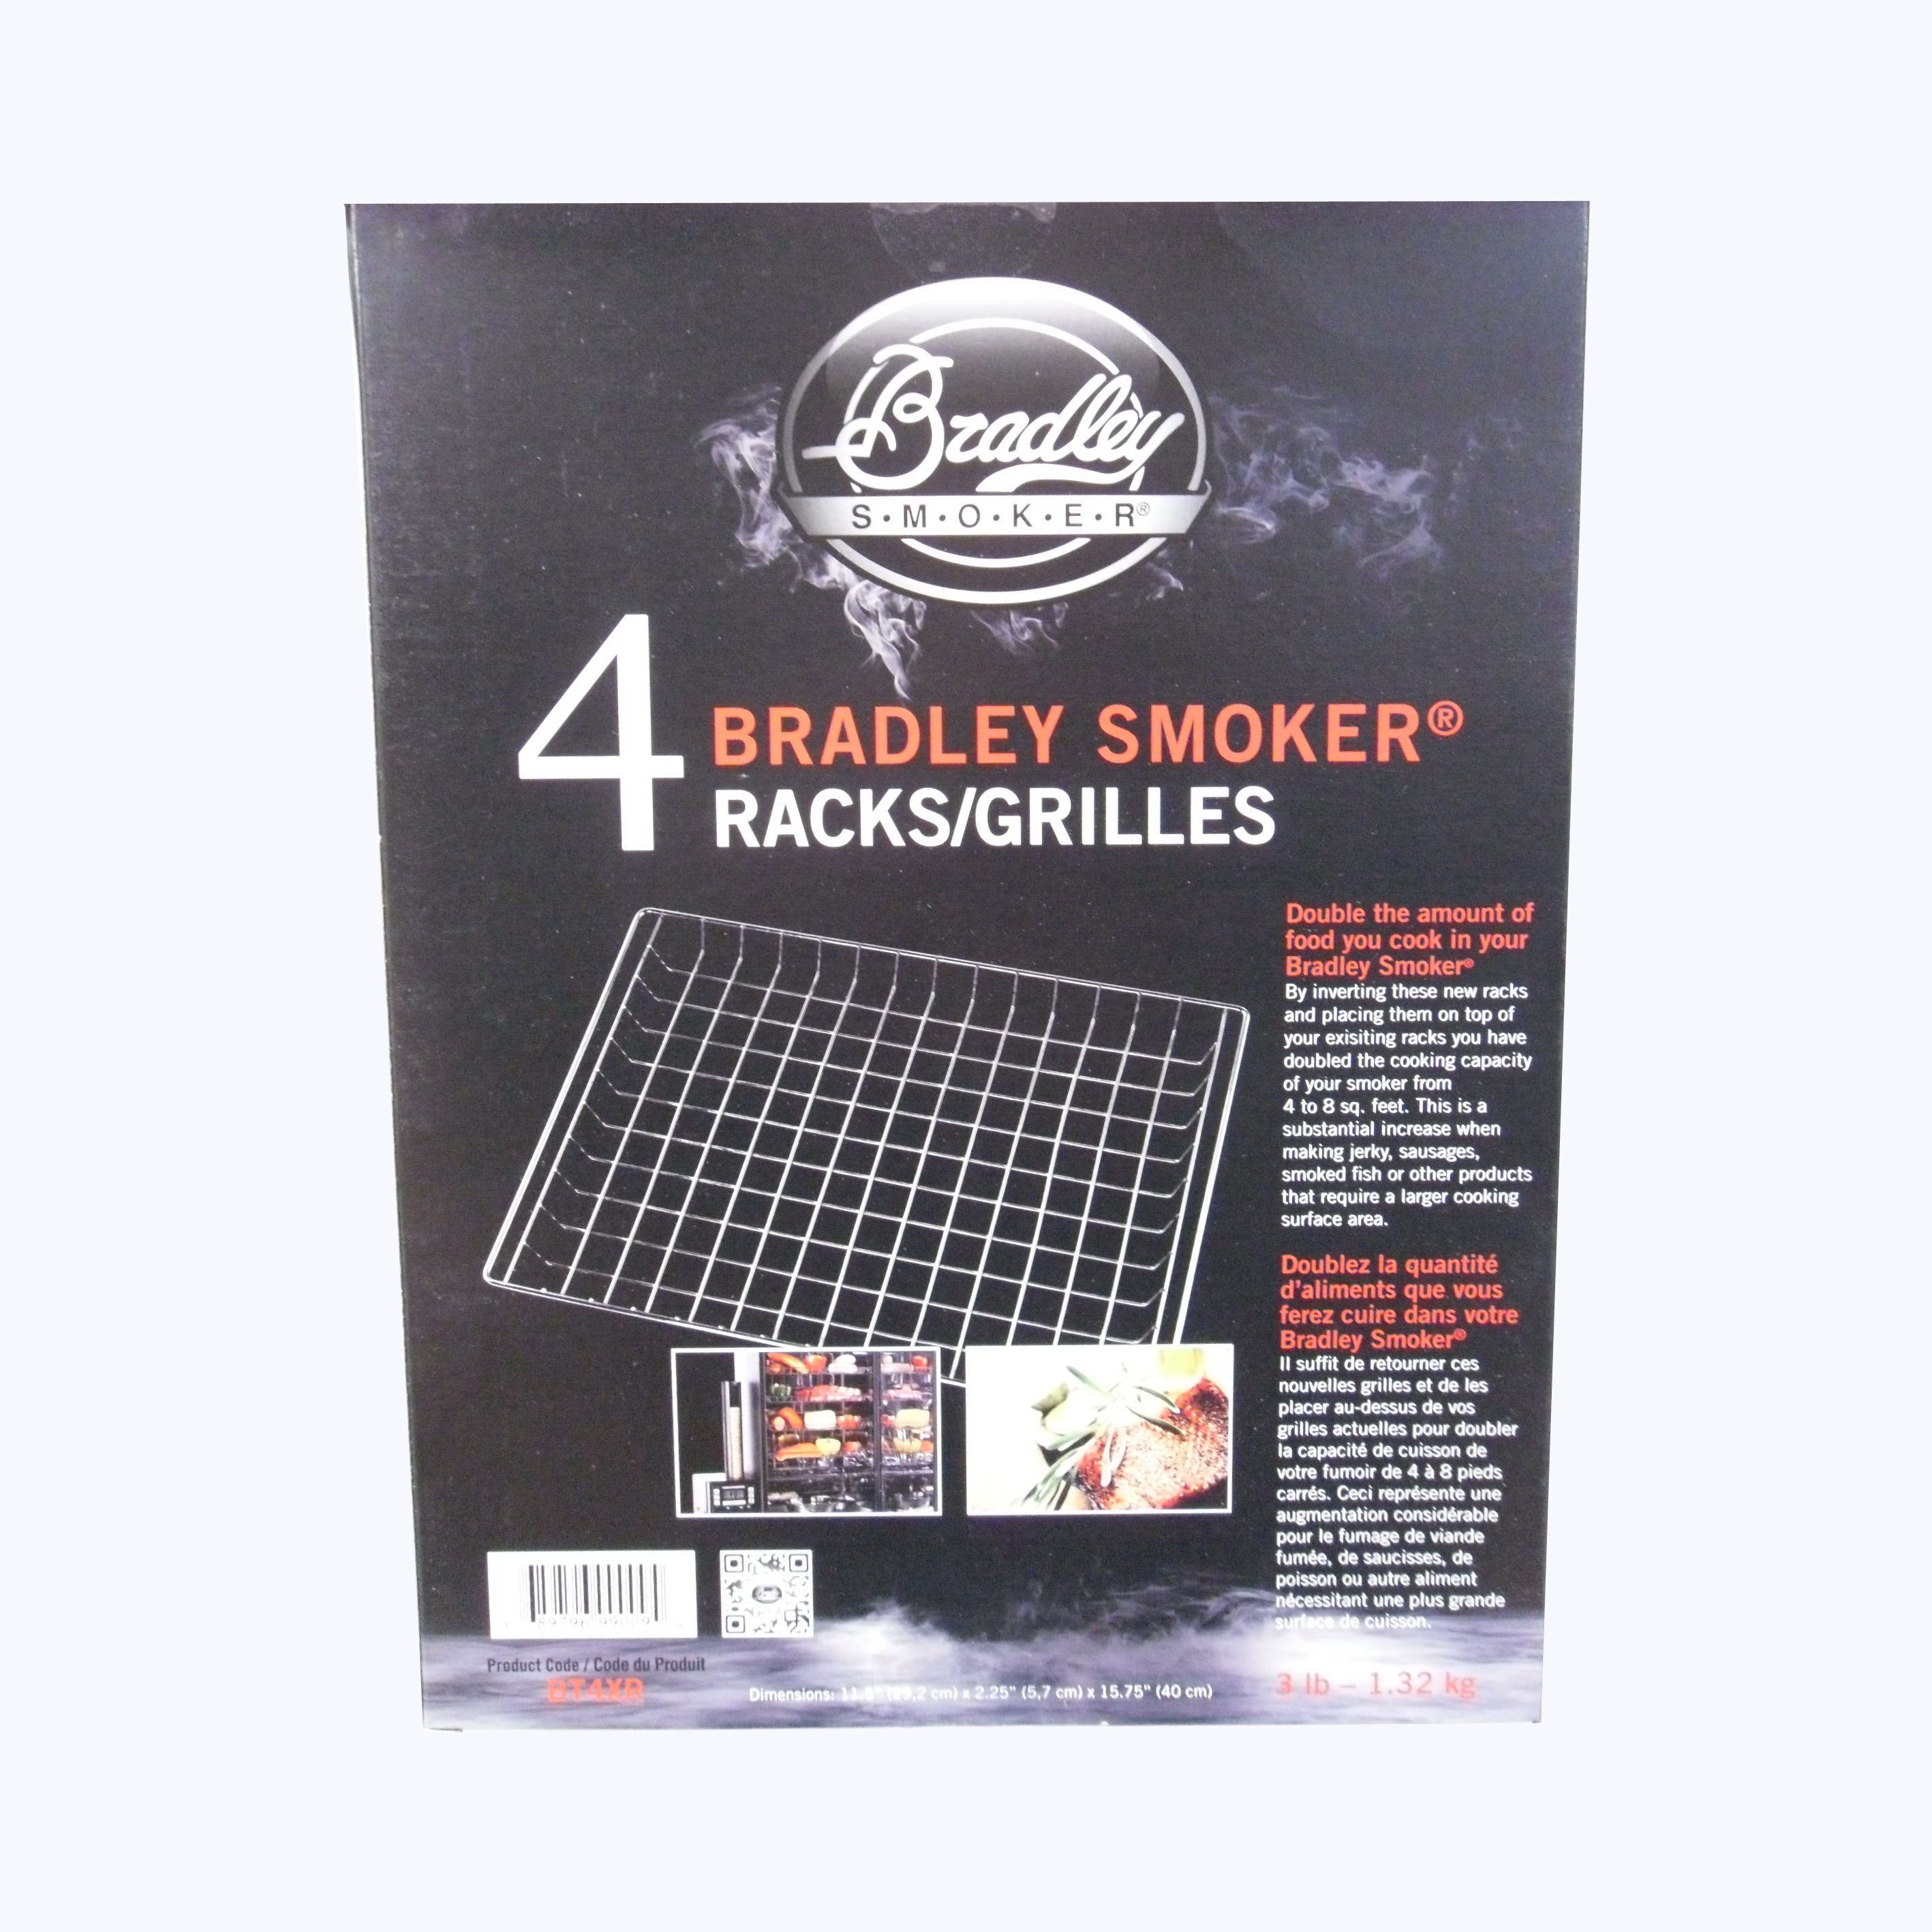 Extra Racks for Bradley Smoker